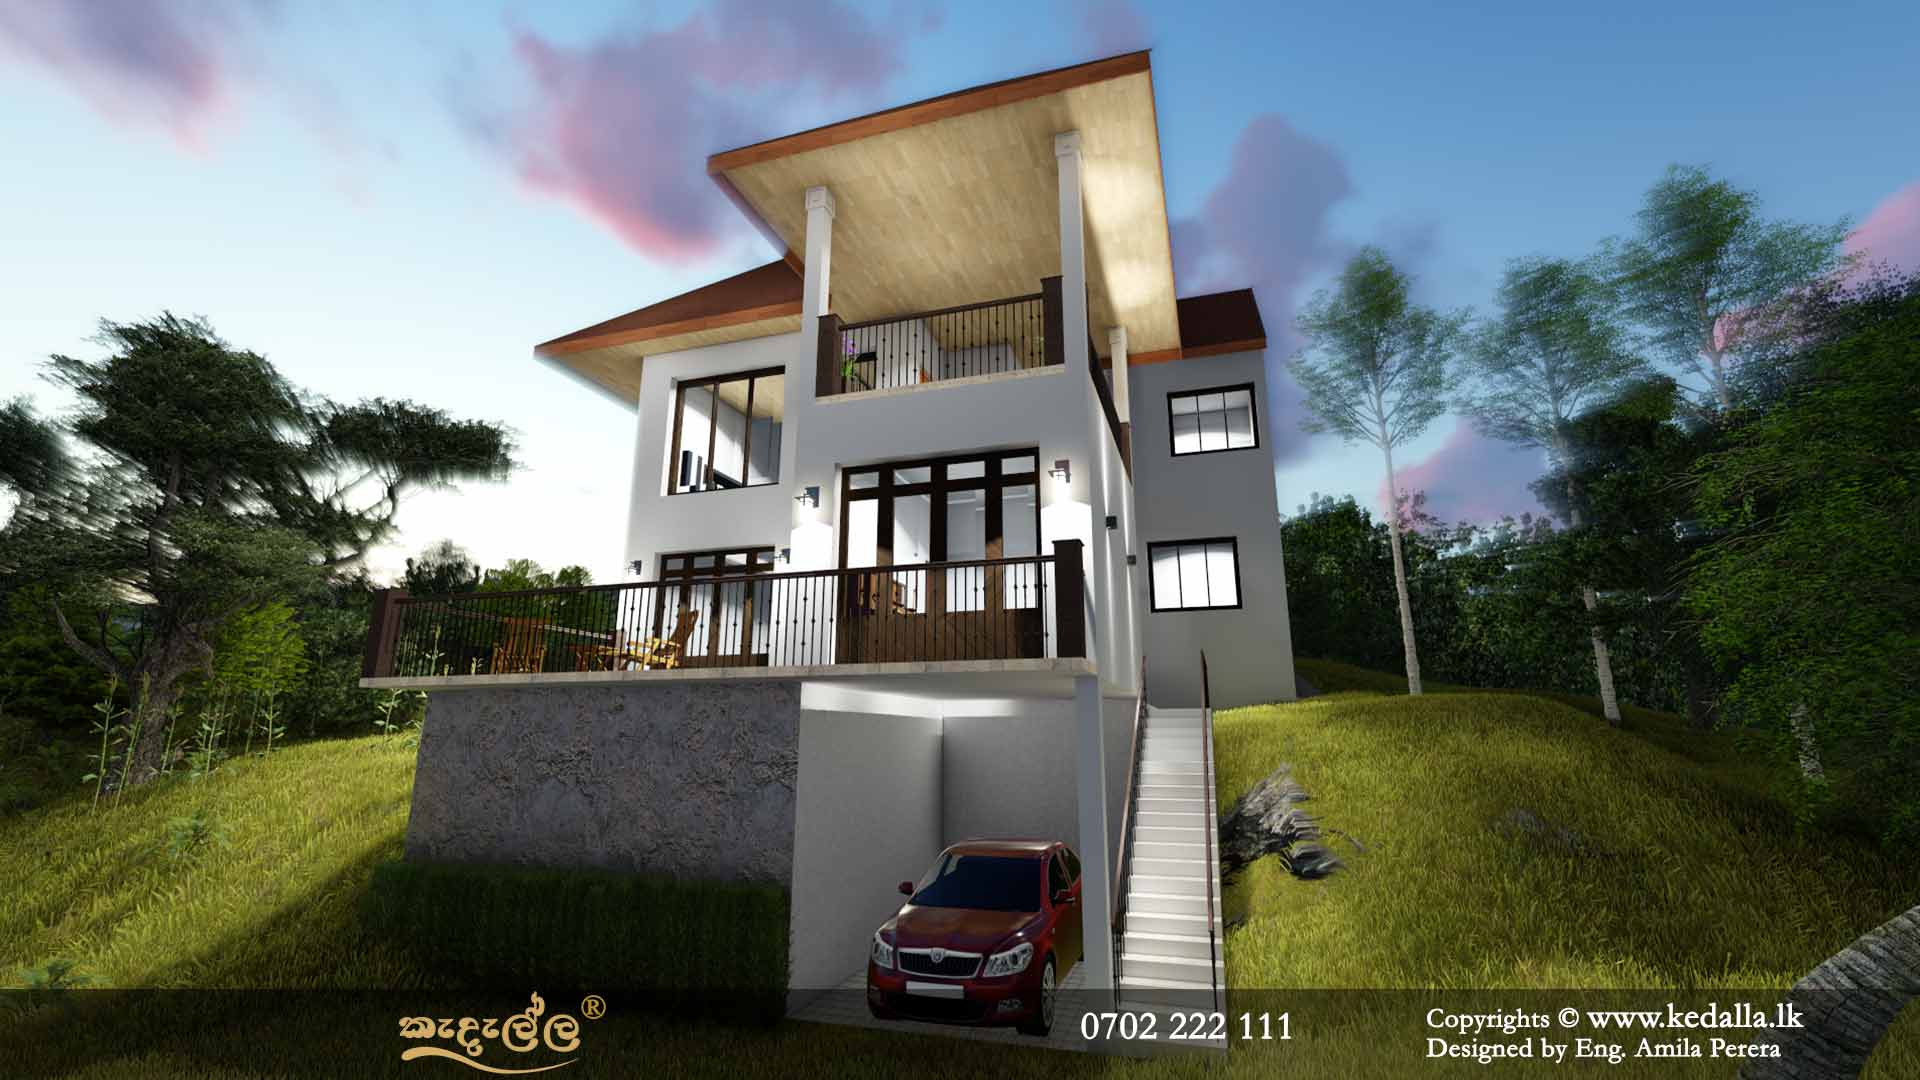 4 Bedroom Three Story House Plans in Sri Lanka - Designed by house designers in Kandy